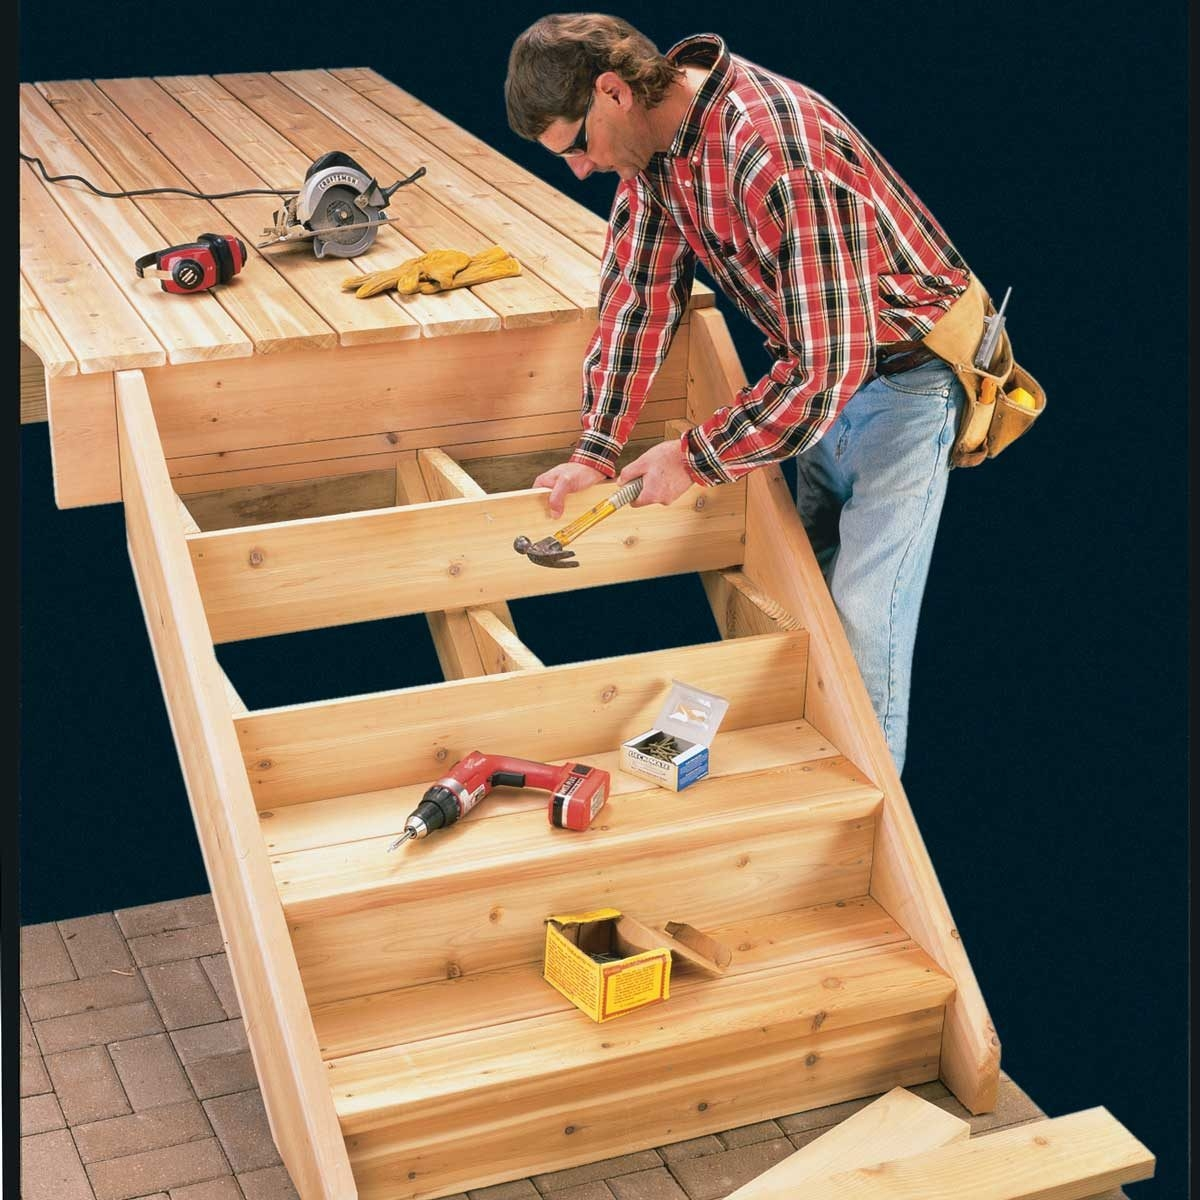 How To Build Deck Stairs The Family Handyman   Building Outdoor Steps With Wood   Pea Gravel   Stair Railing   Porch Steps   Composite Decking   Hillside